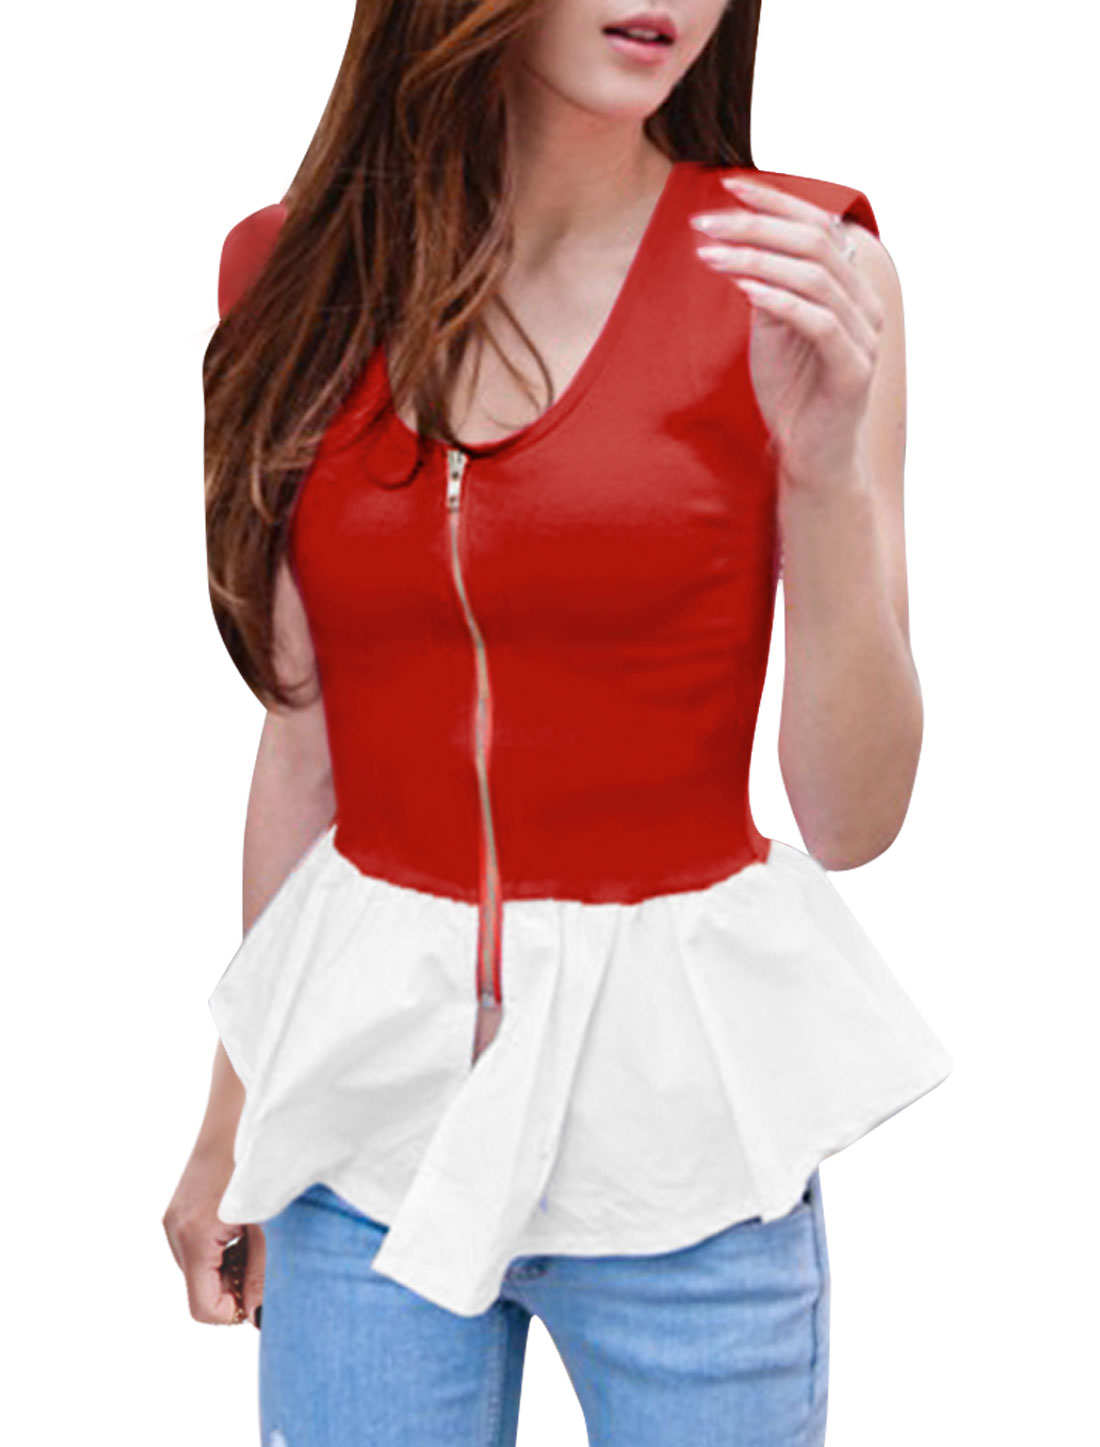 Ladies Zip-Up Front Design Padded Shoulder Red White Splice Peplum Top XS